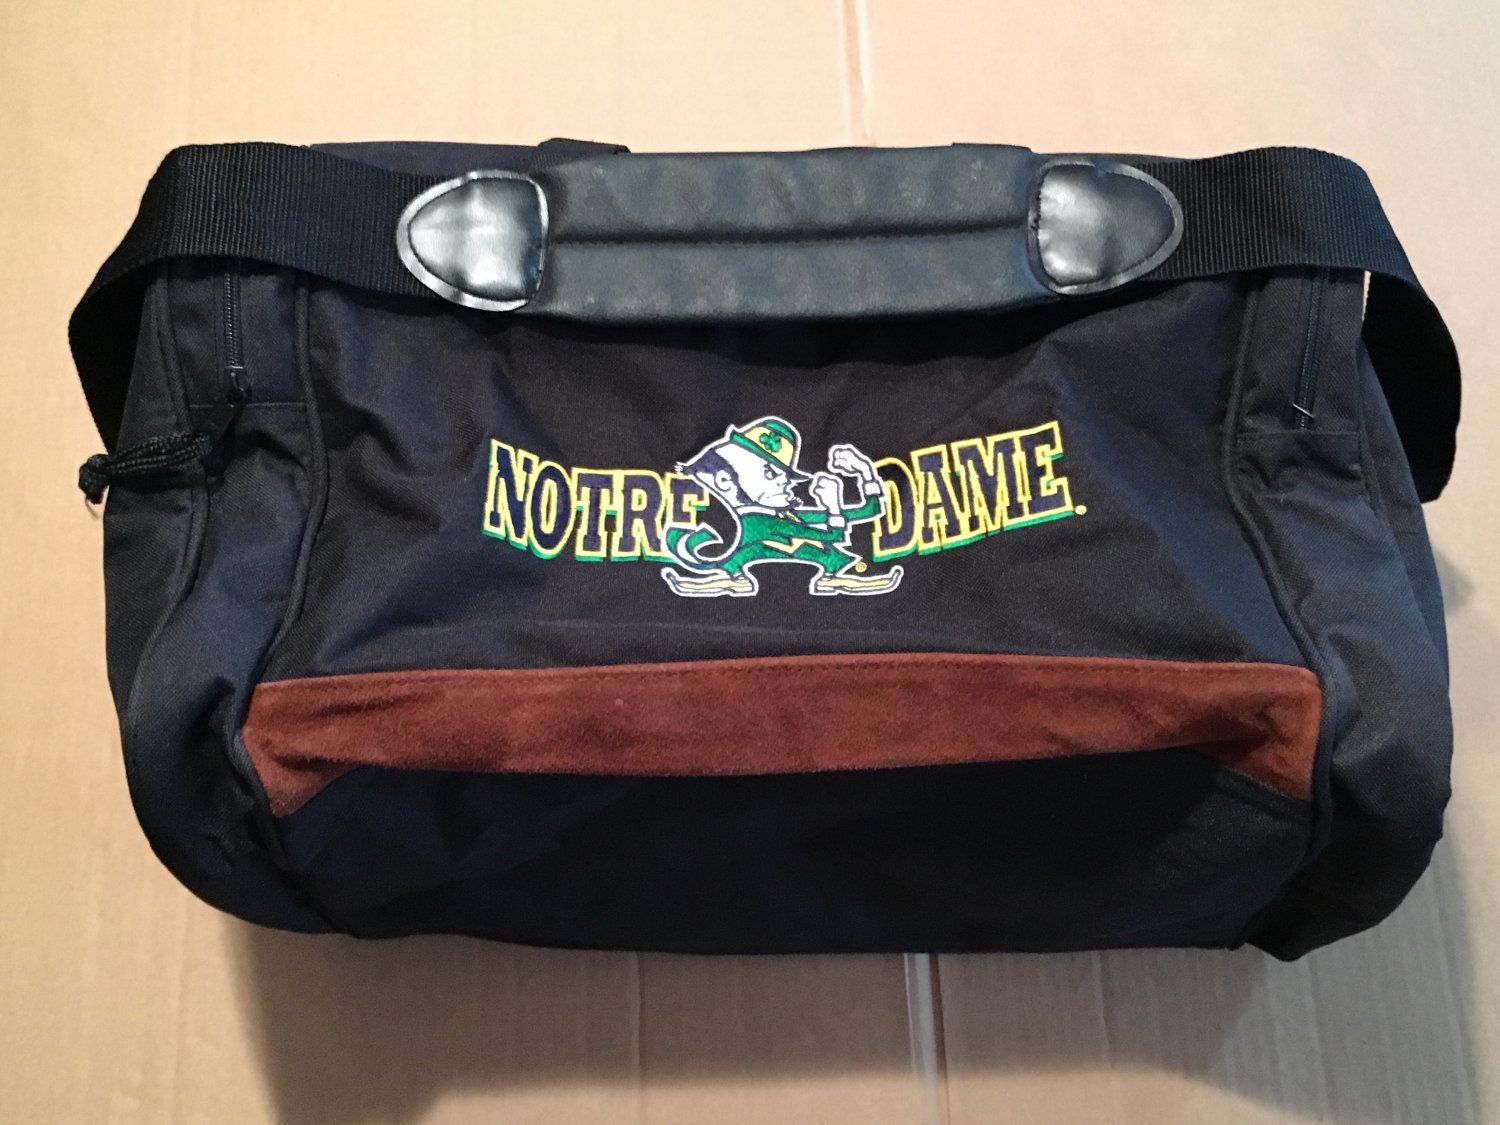 Vintage Notre Dame Duffel Bag, Travel, Gym, Luggage, Accessories A.D.S. Sports